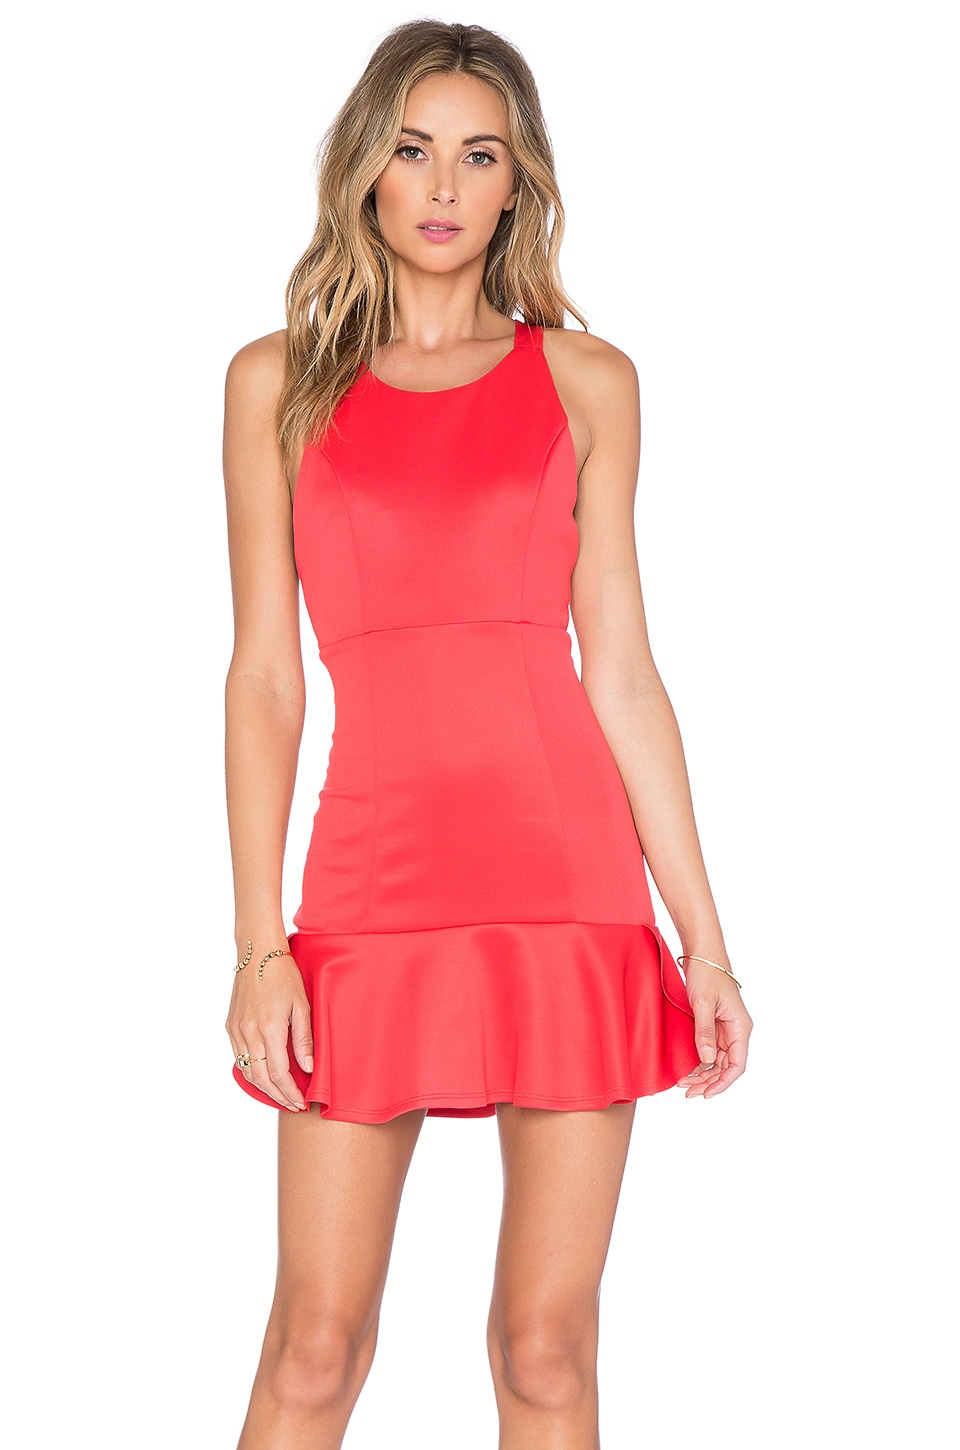 Lovers + Friends Morning Light Dress in Coral